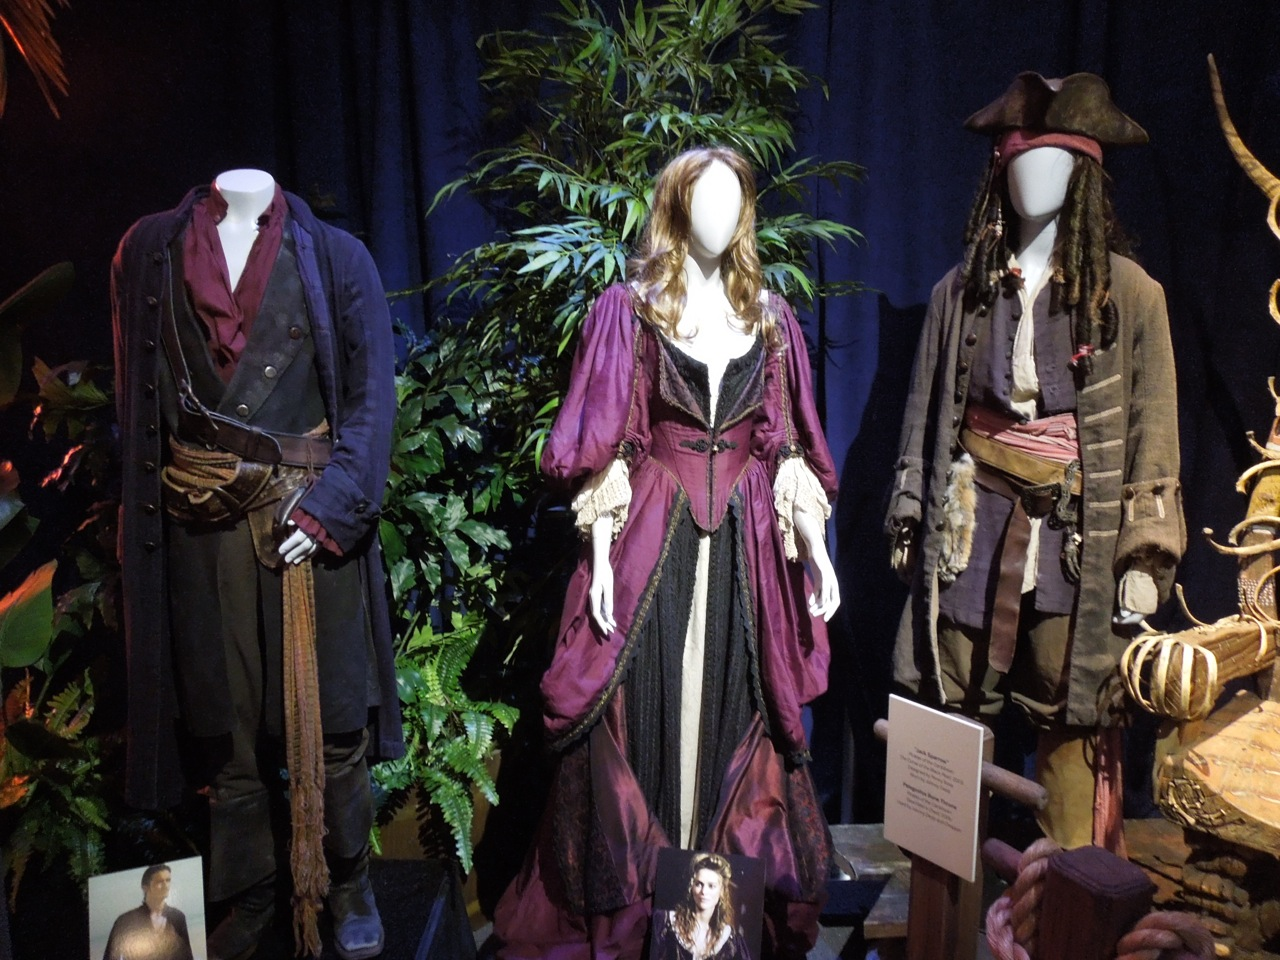 Hollywood Movie Costumes And Props Elizabeth Swann & Pirates Of The Carribean Costumes - Meningrey